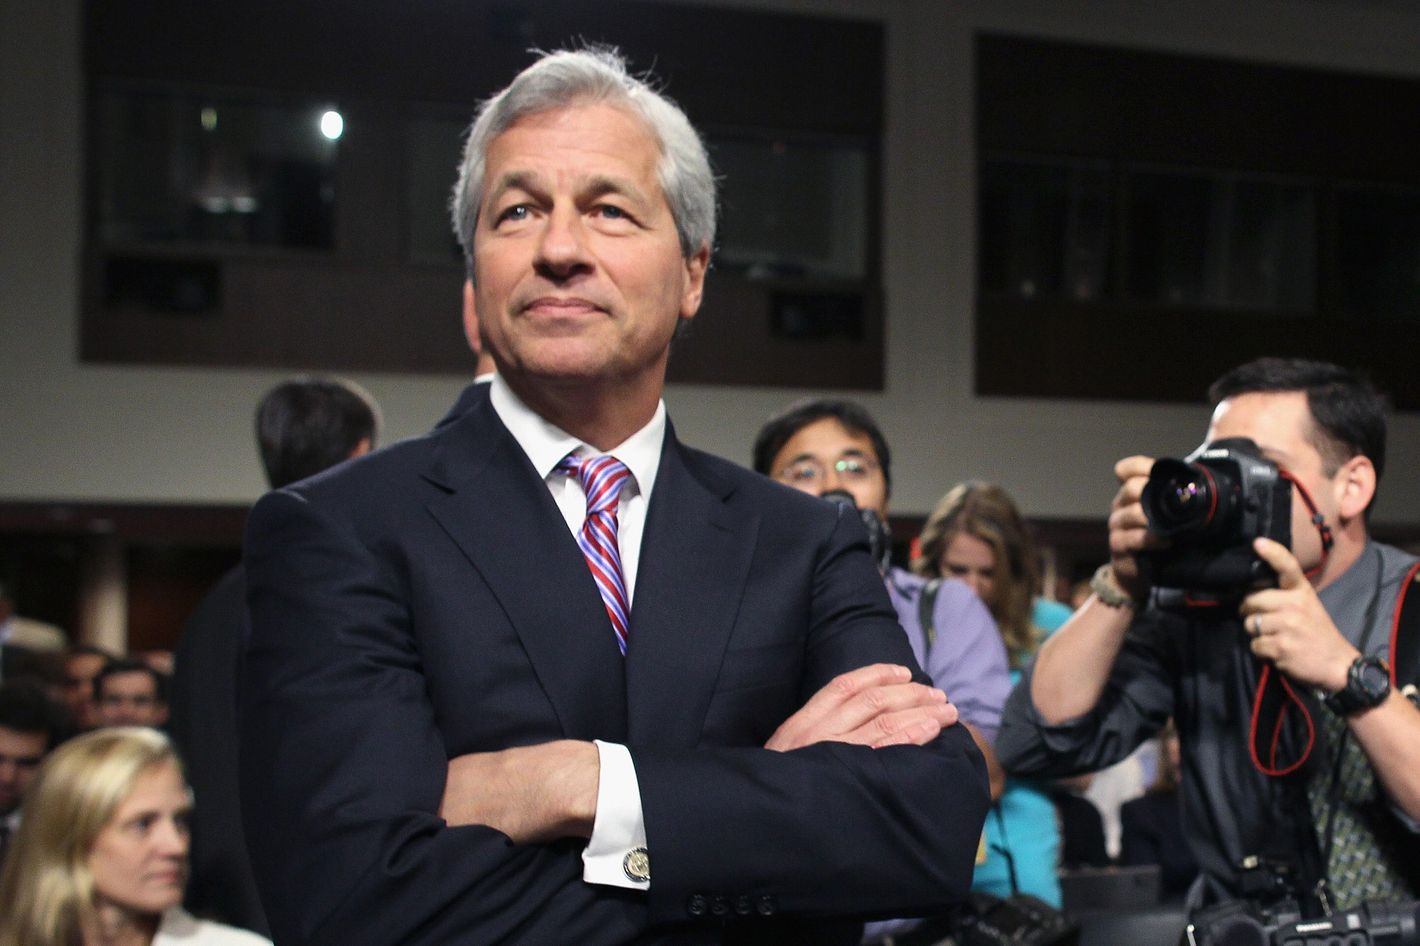 President and CEO of JPMorgan Chase Co. Jamie Dimon